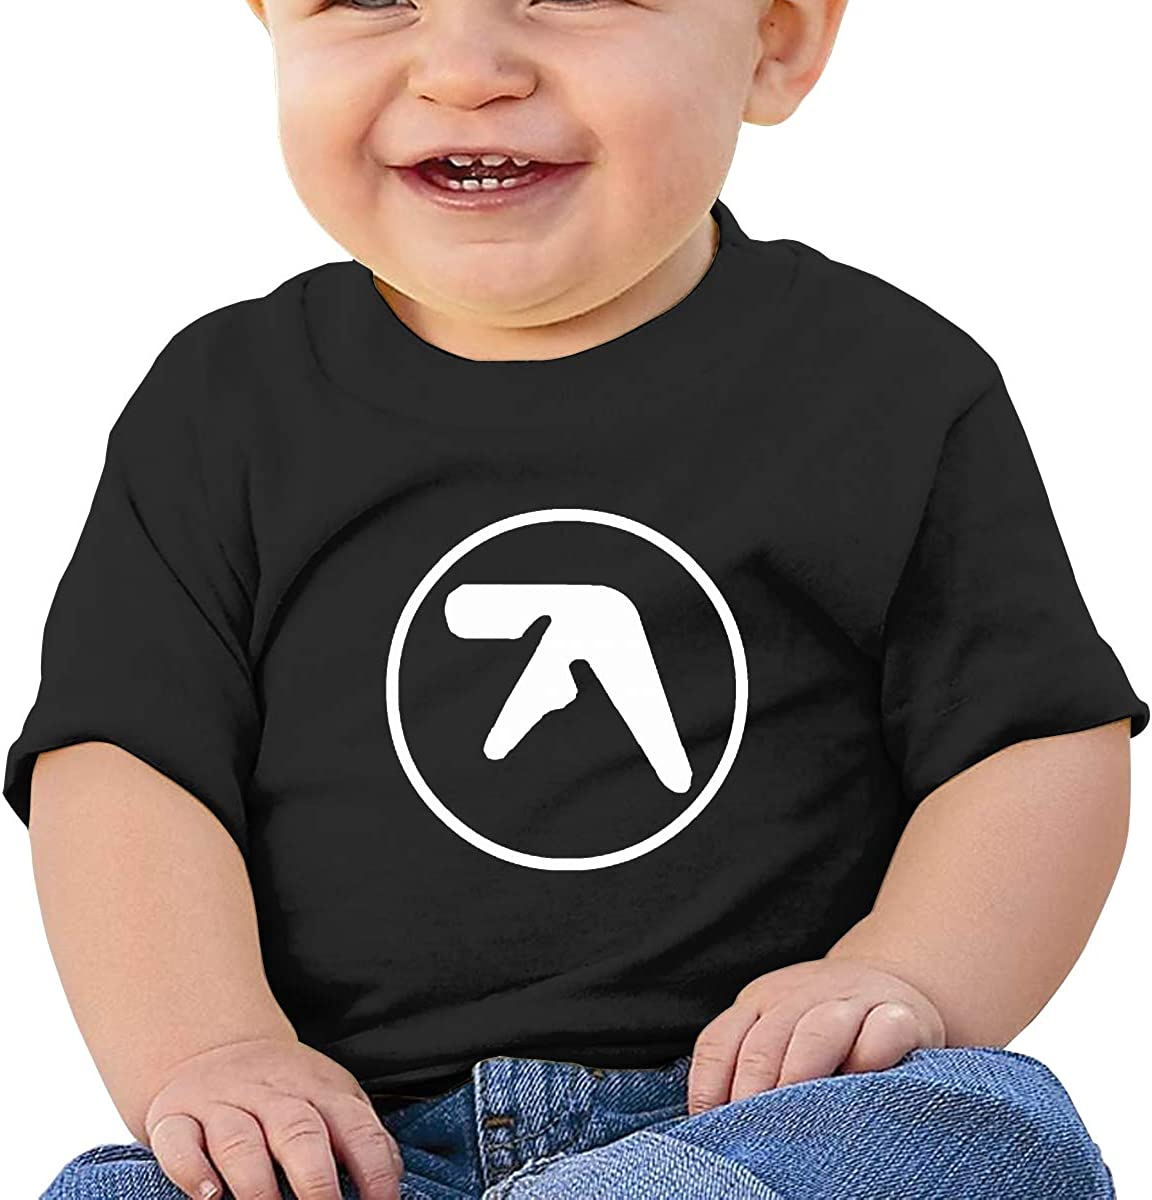 Wokeyia Baby Aphex Twin Black Tshirts Breathable T Shirts for Infant